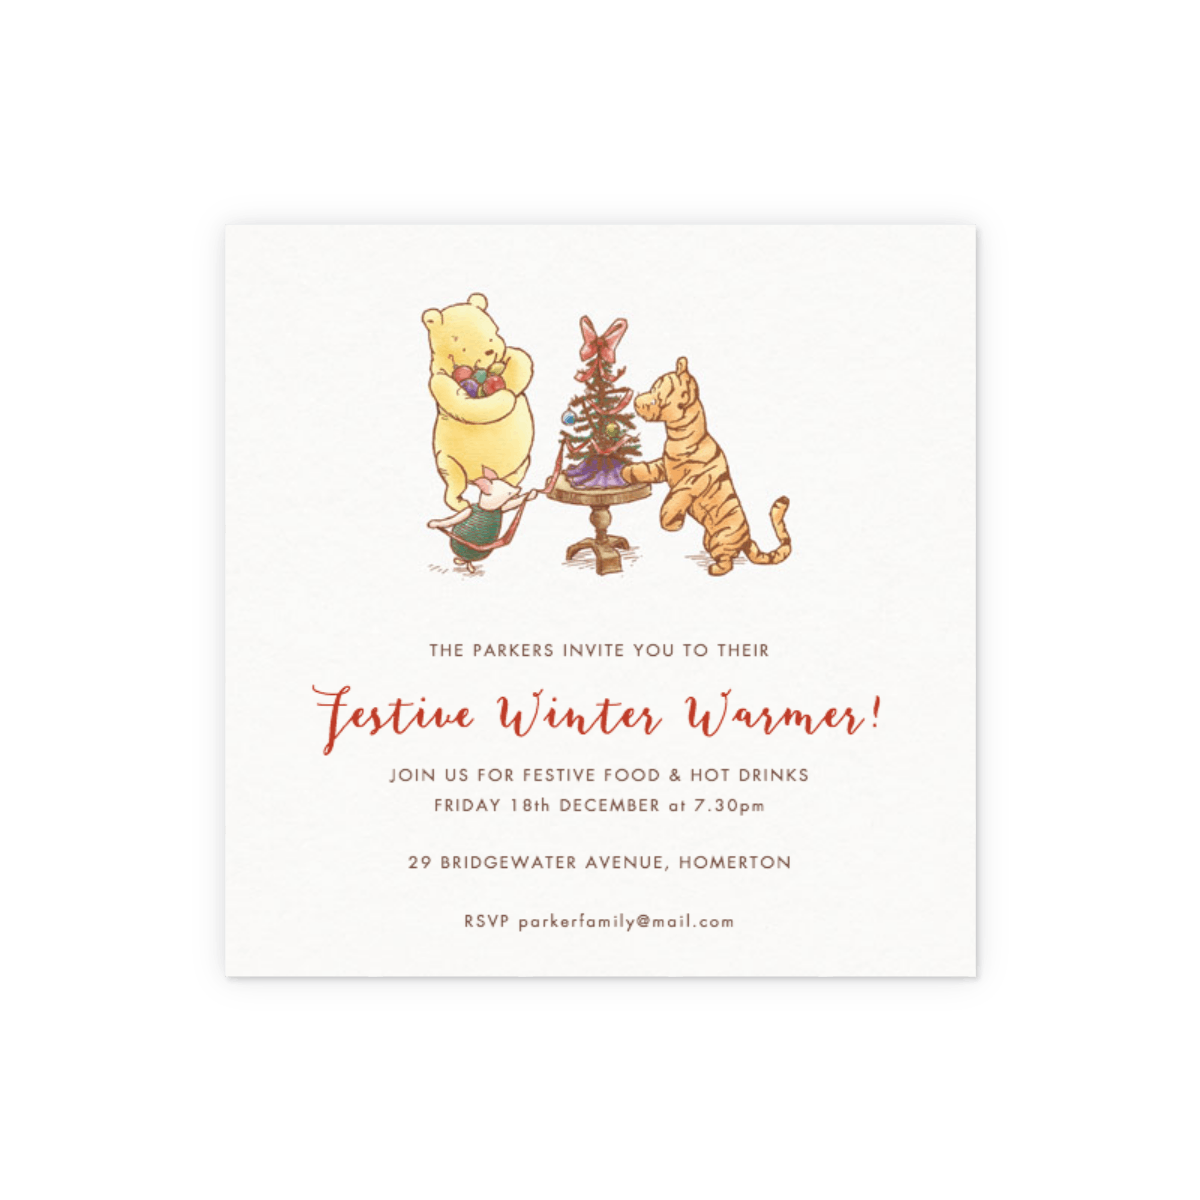 Https%3a%2f%2fwww.papier.com%2fproduct image%2f41786%2f11%2fwinnie the pooh christmas 10651 front 1532518974.png?ixlib=rb 1.1